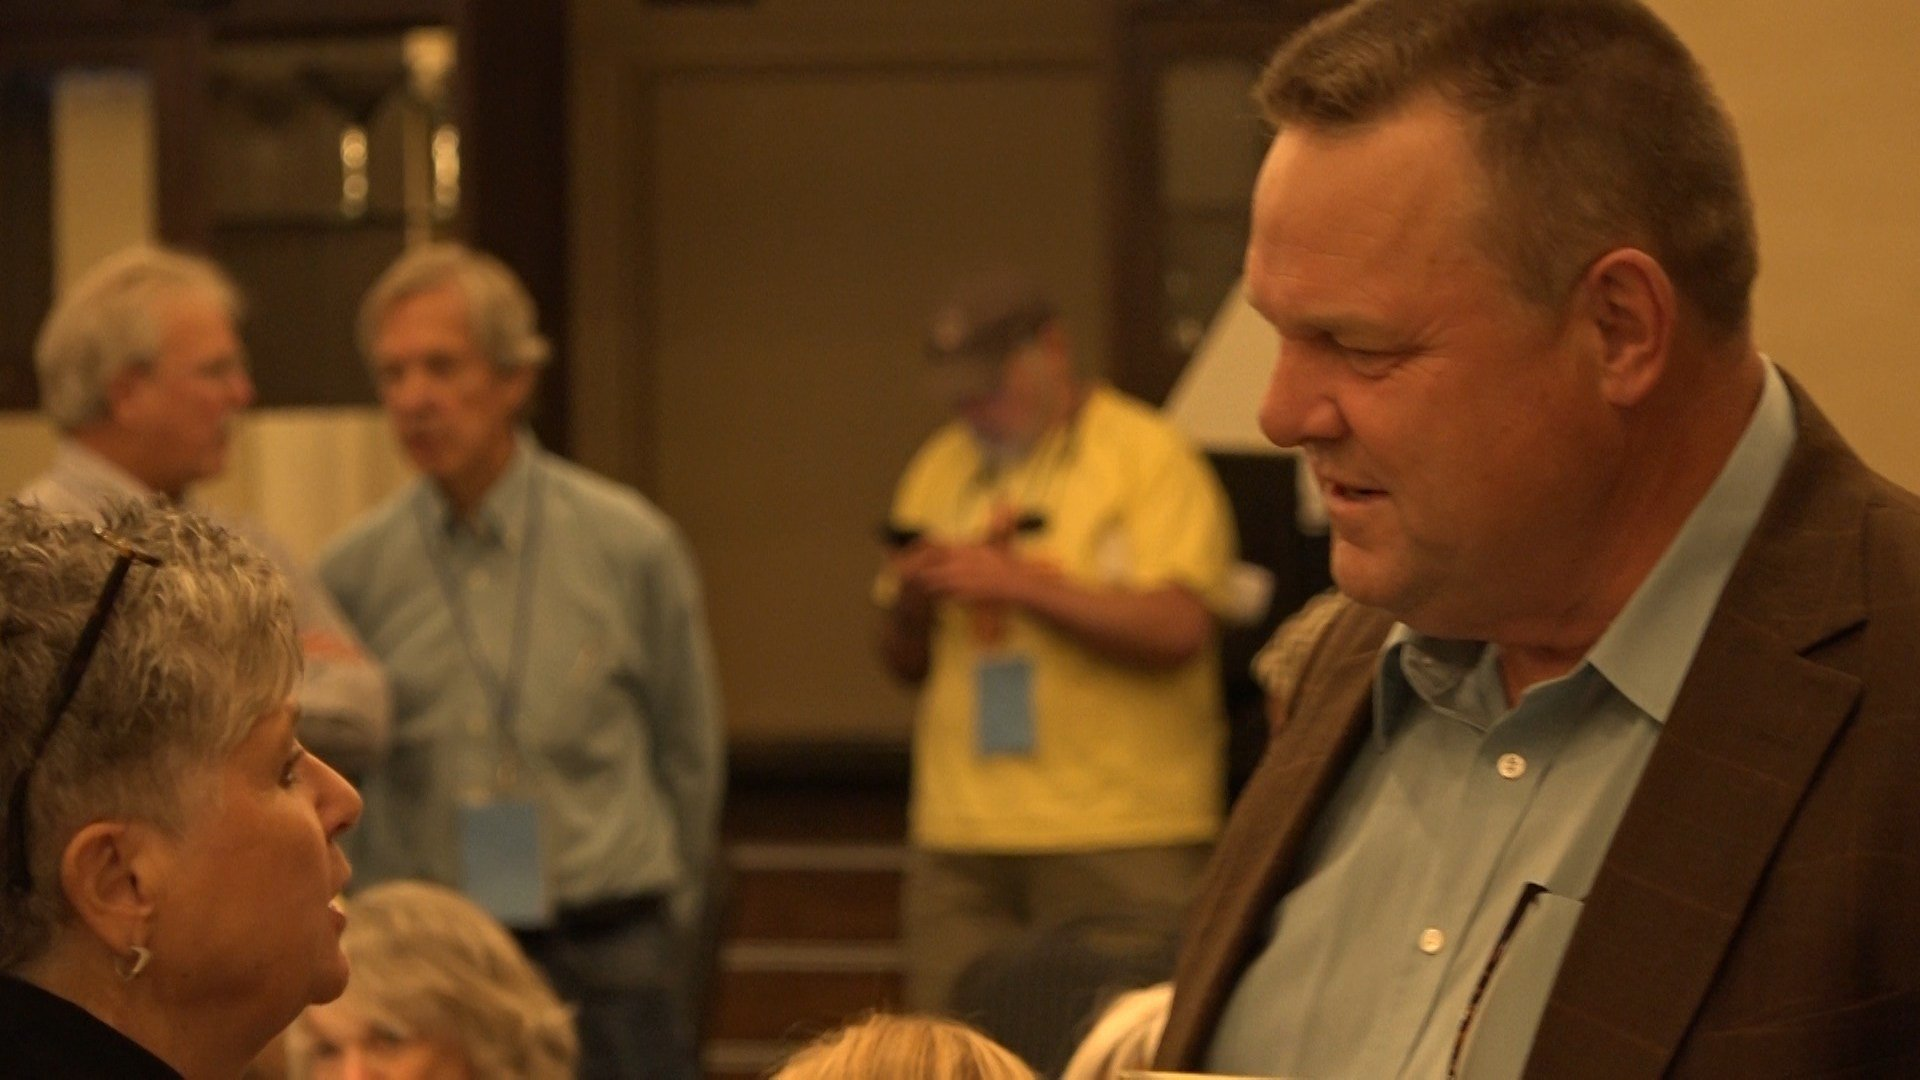 U.S. Sen. Jon Tester talks to MT Dem Party Executive Director Nancy Keenan